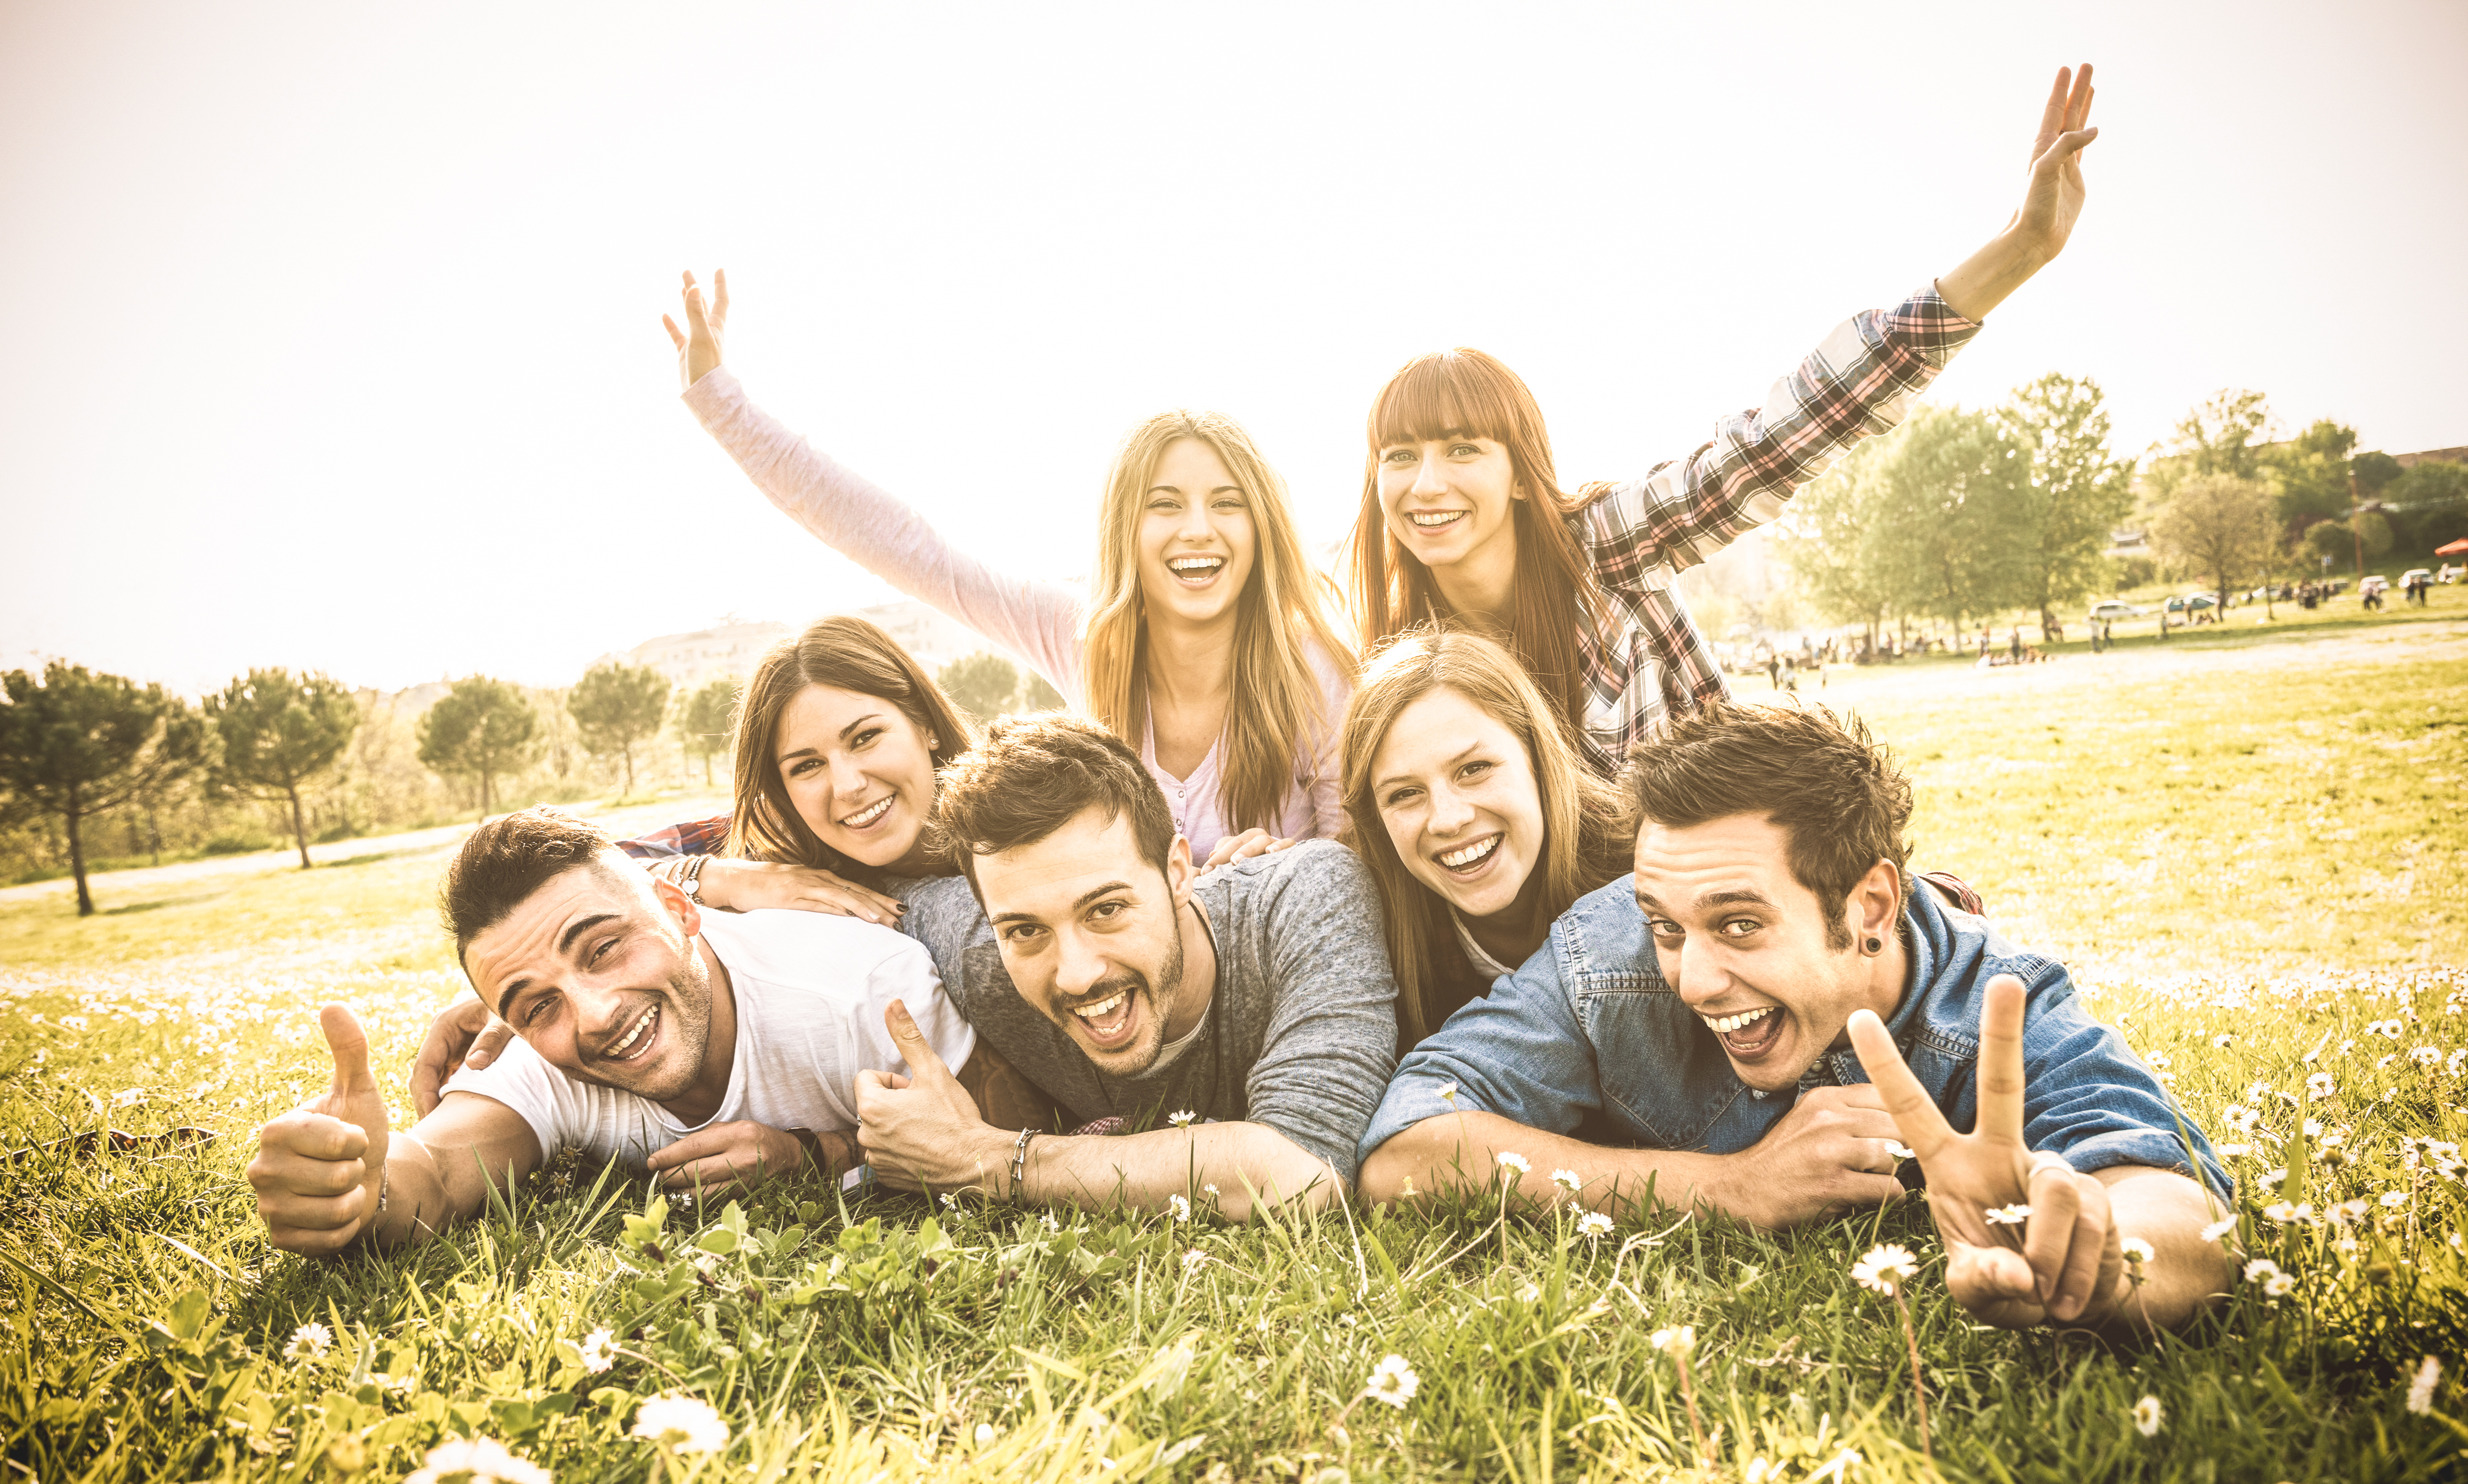 Friends group having fun together with self portrait on grass meadow - Friendship youth concept with